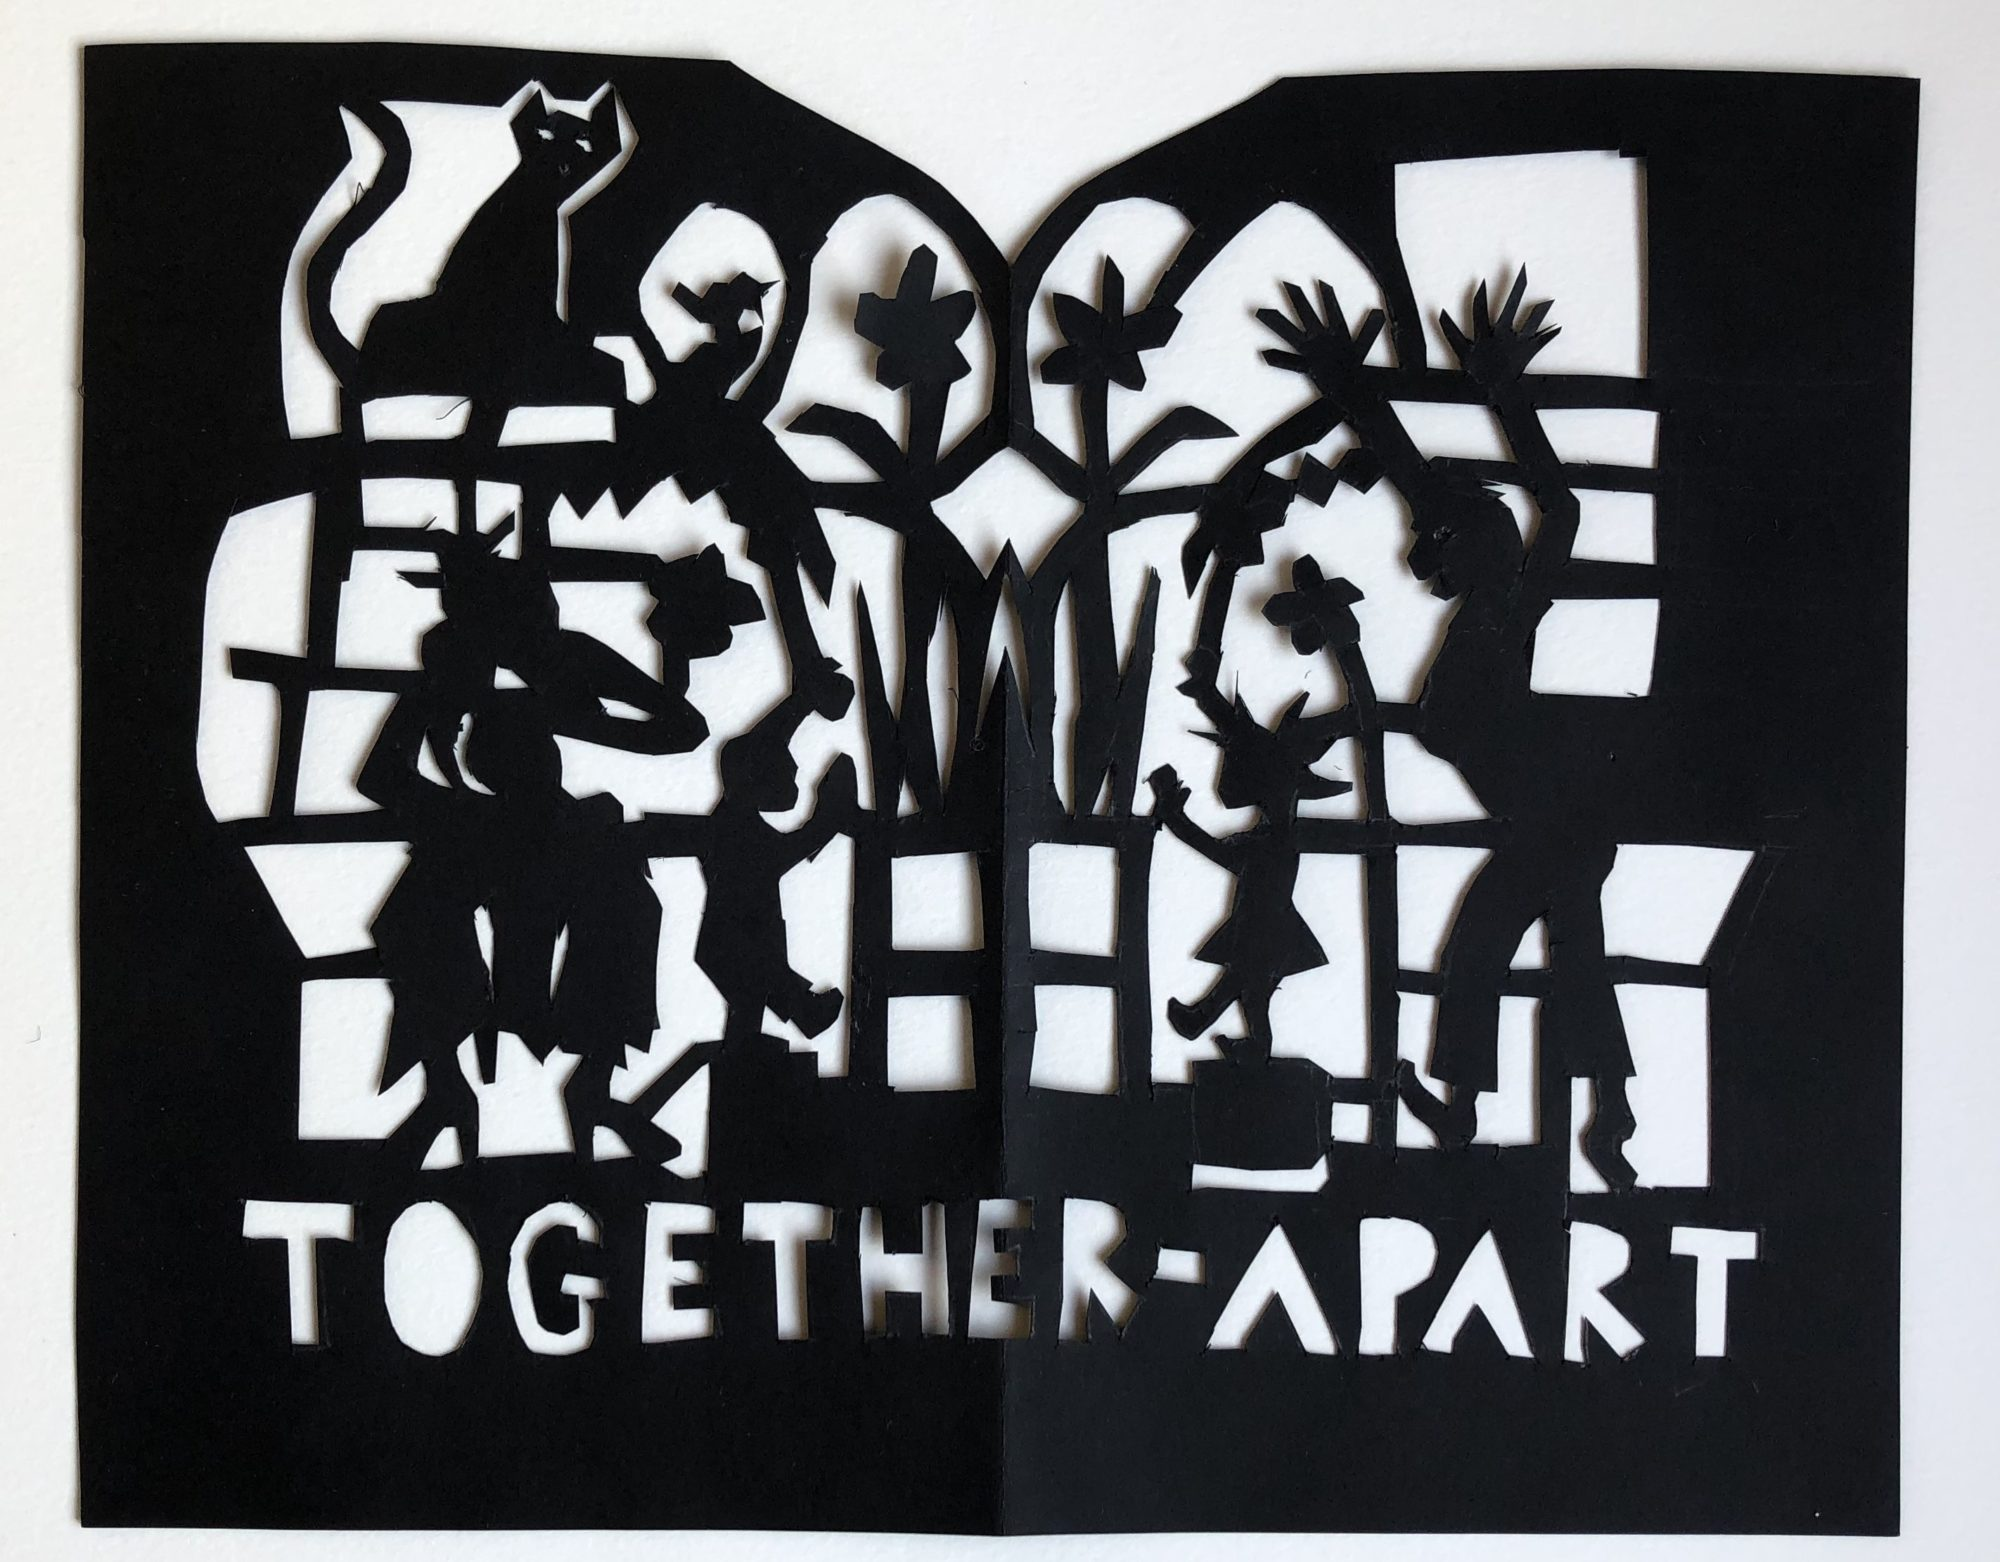 'Together Apart' 'Together Apart', Et Papirklip I Sort Papir. Del Af Serien, Coronabreve 2020